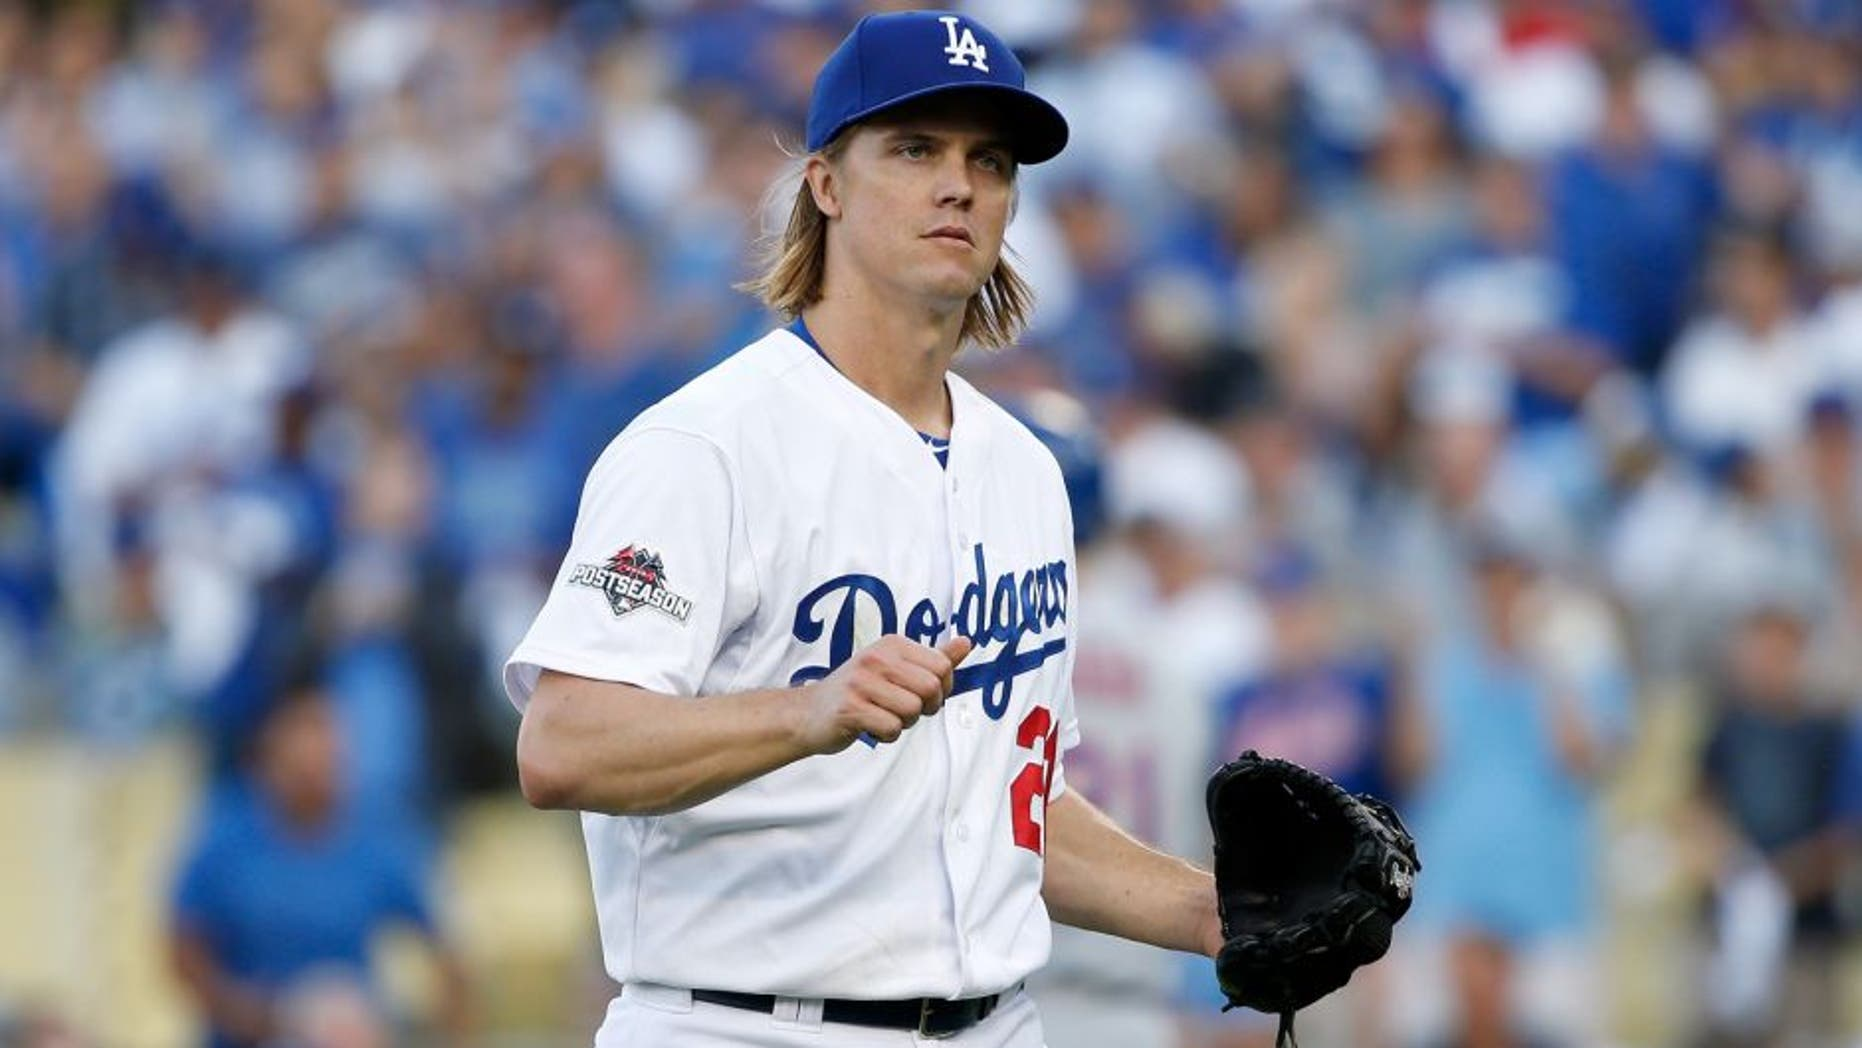 LOS ANGELES, CA - OCTOBER 15: Zack Greinke #21 of the Los Angeles Dodgers reacts after the final out in the first inning against the New York Mets in game five of the National League Division Series at Dodger Stadium on October 15, 2015 in Los Angeles, California. (Photo by Sean M. Haffey/Getty Images)